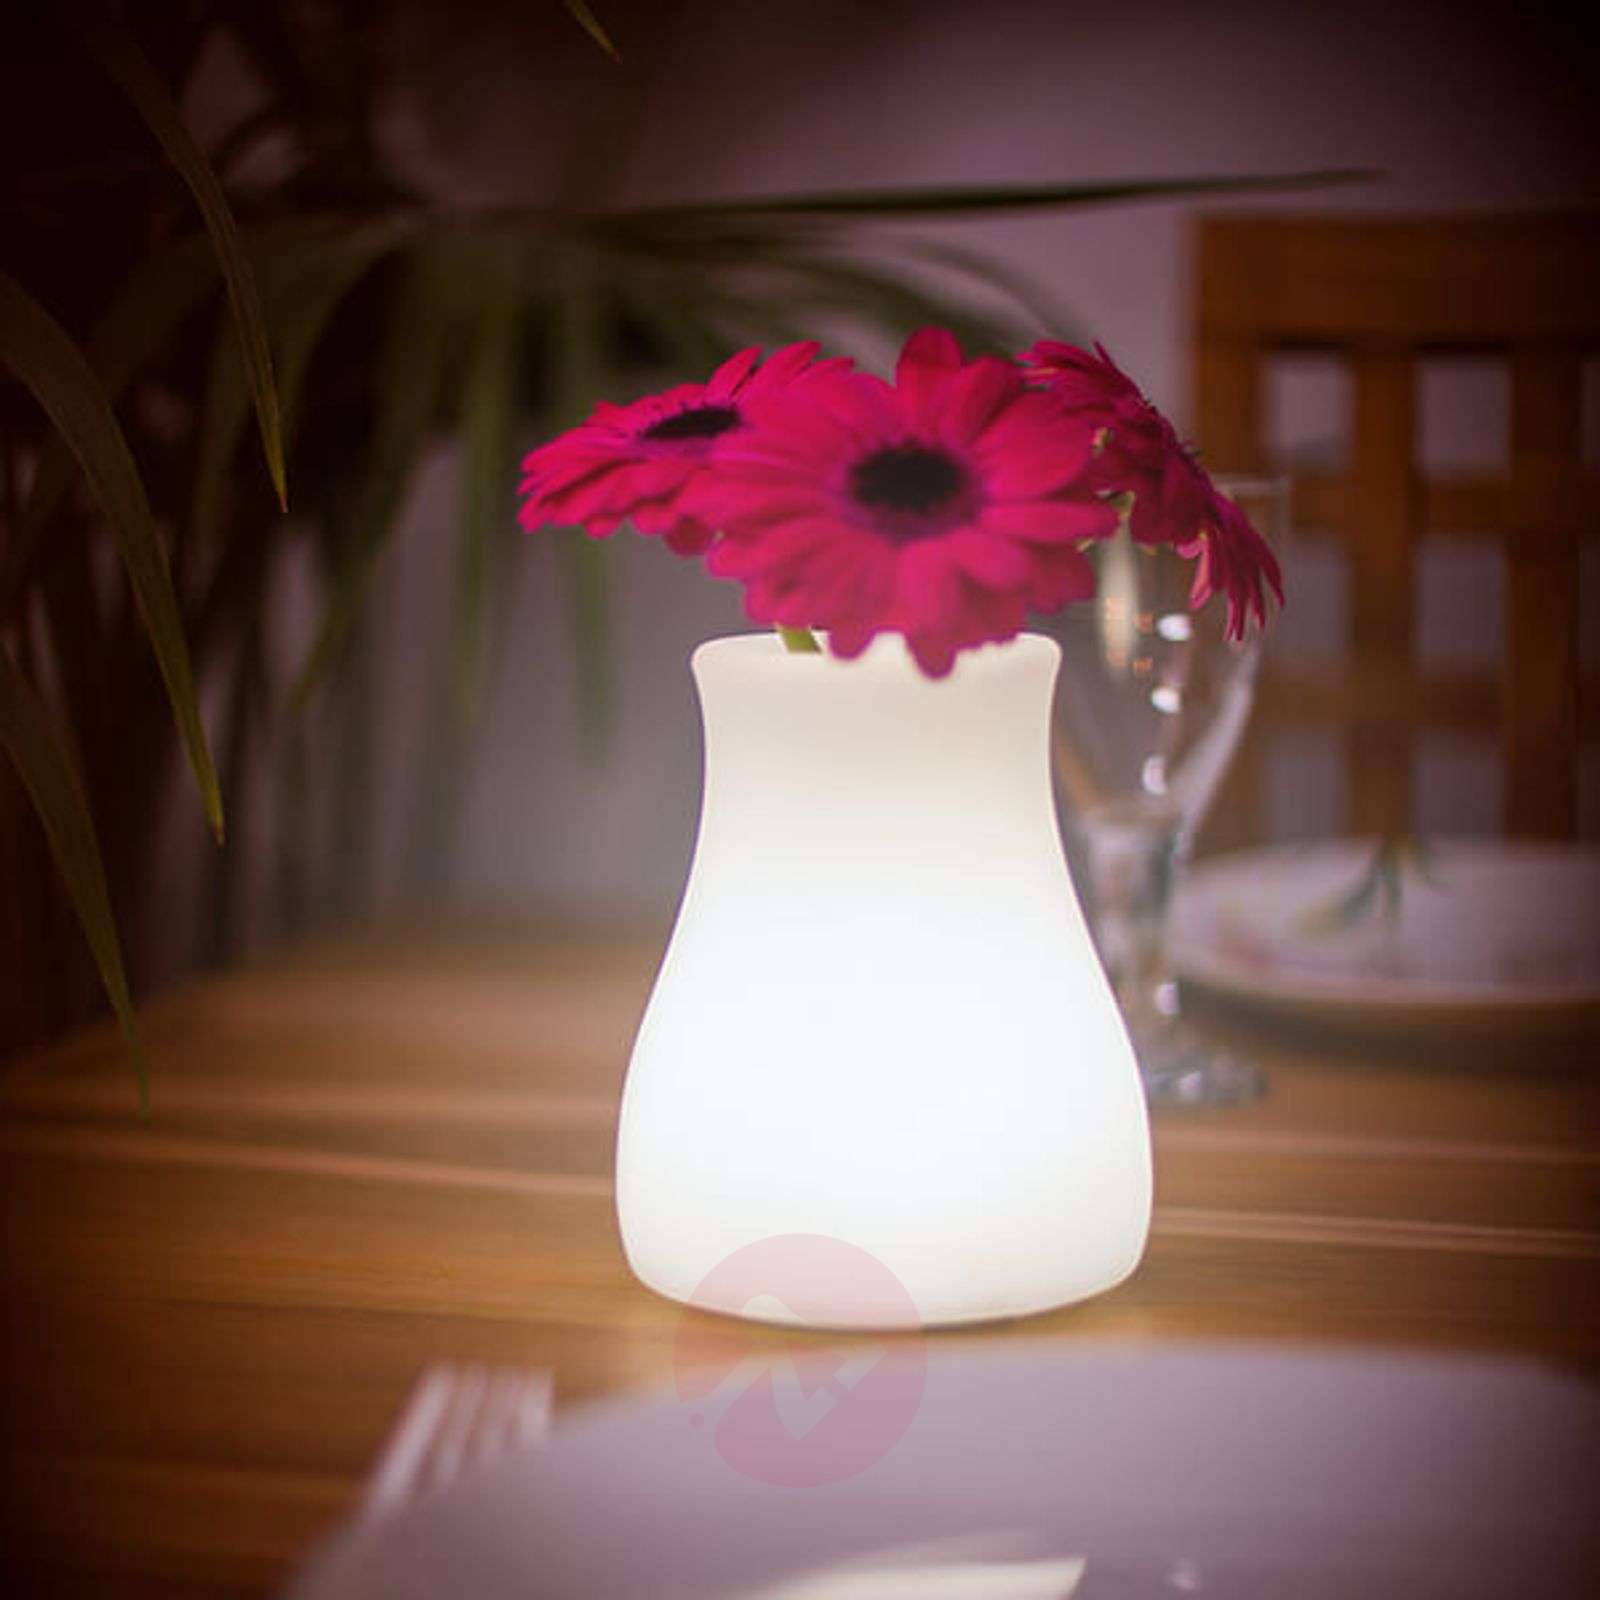 Olio controllable LED light source and vase-8590032-01